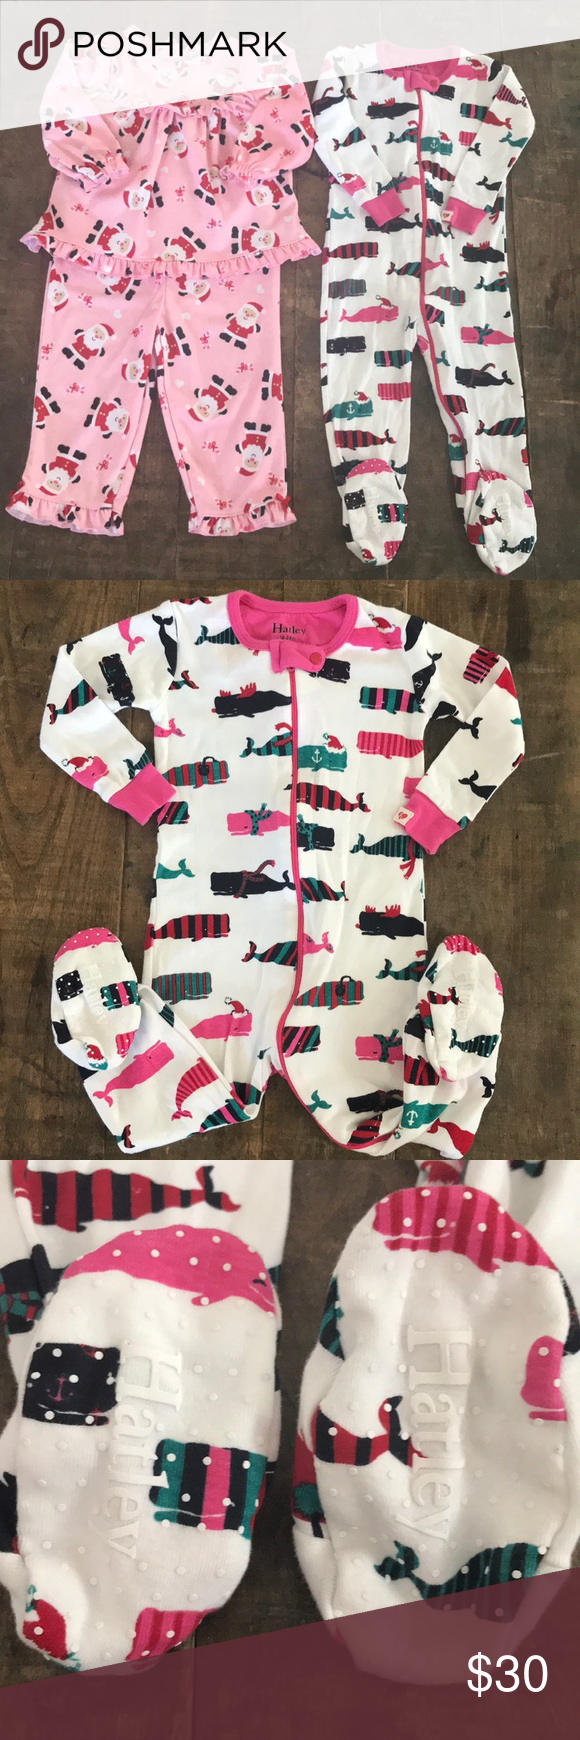 SOLD🔹HATLEY/ LITTLE ME Holiday Pajamas Duo Holiday